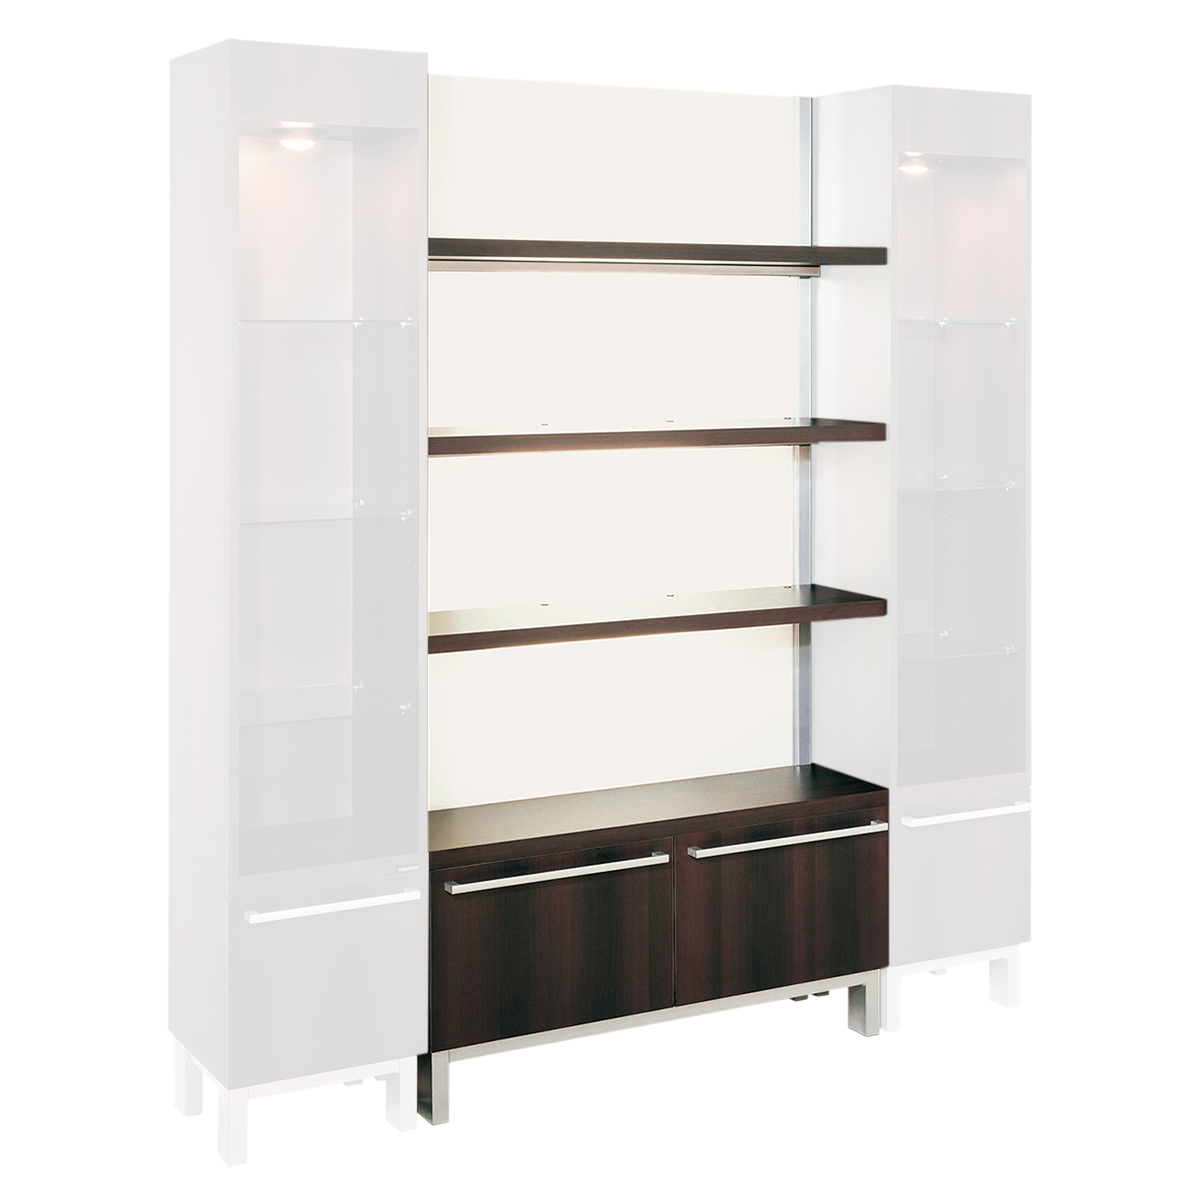 Belvedere KT182/KT183 Kallista Retail Display Cases alternative product image 1